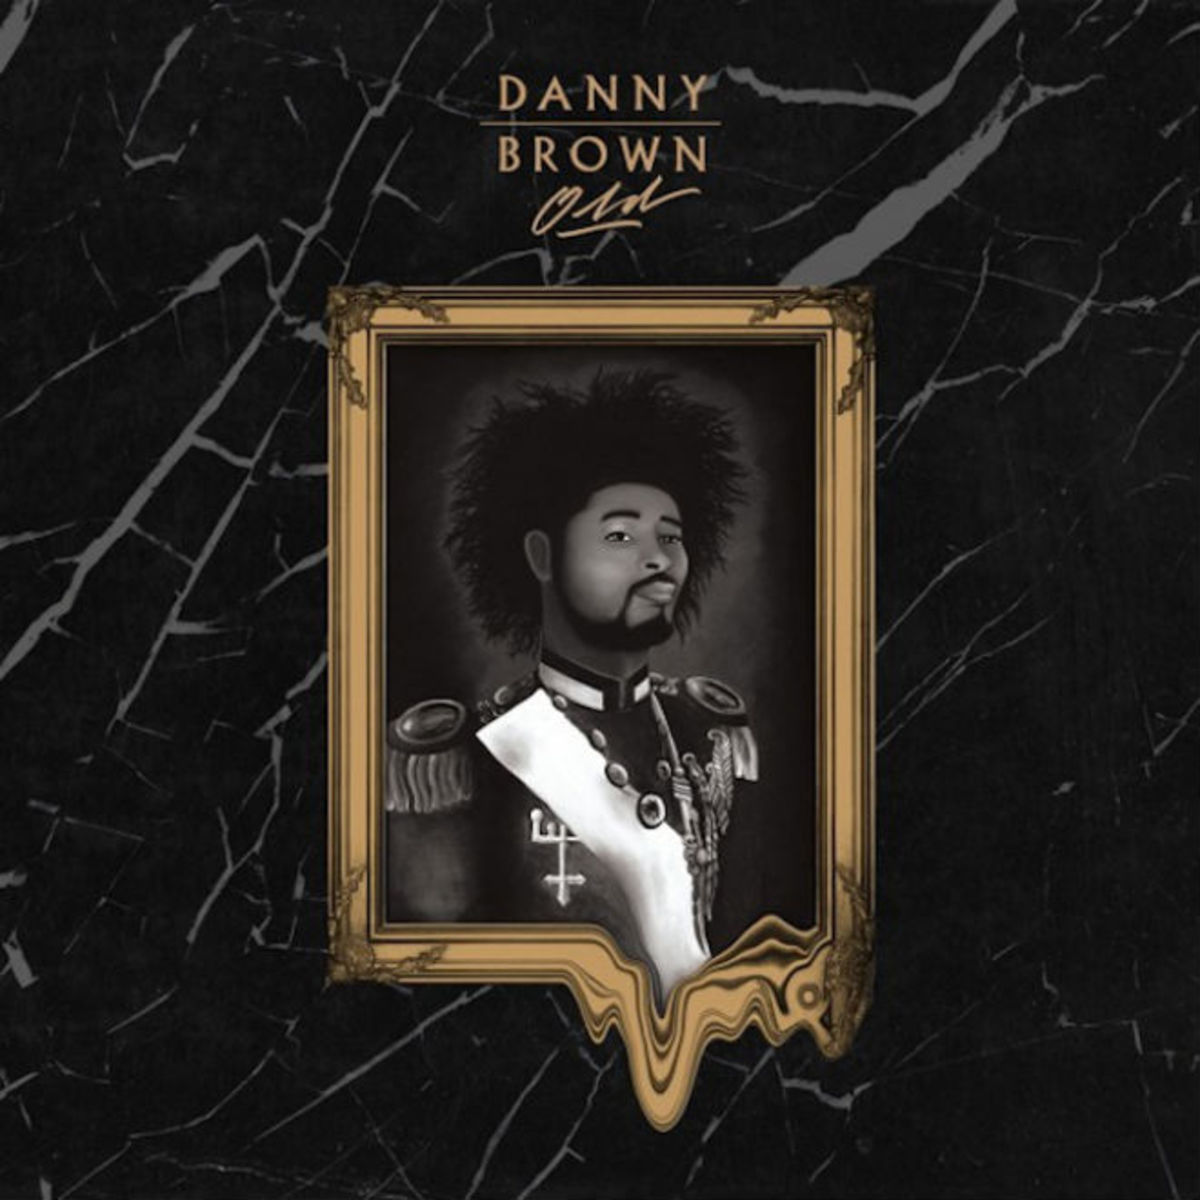 Cover Art for Danny Brown's Old